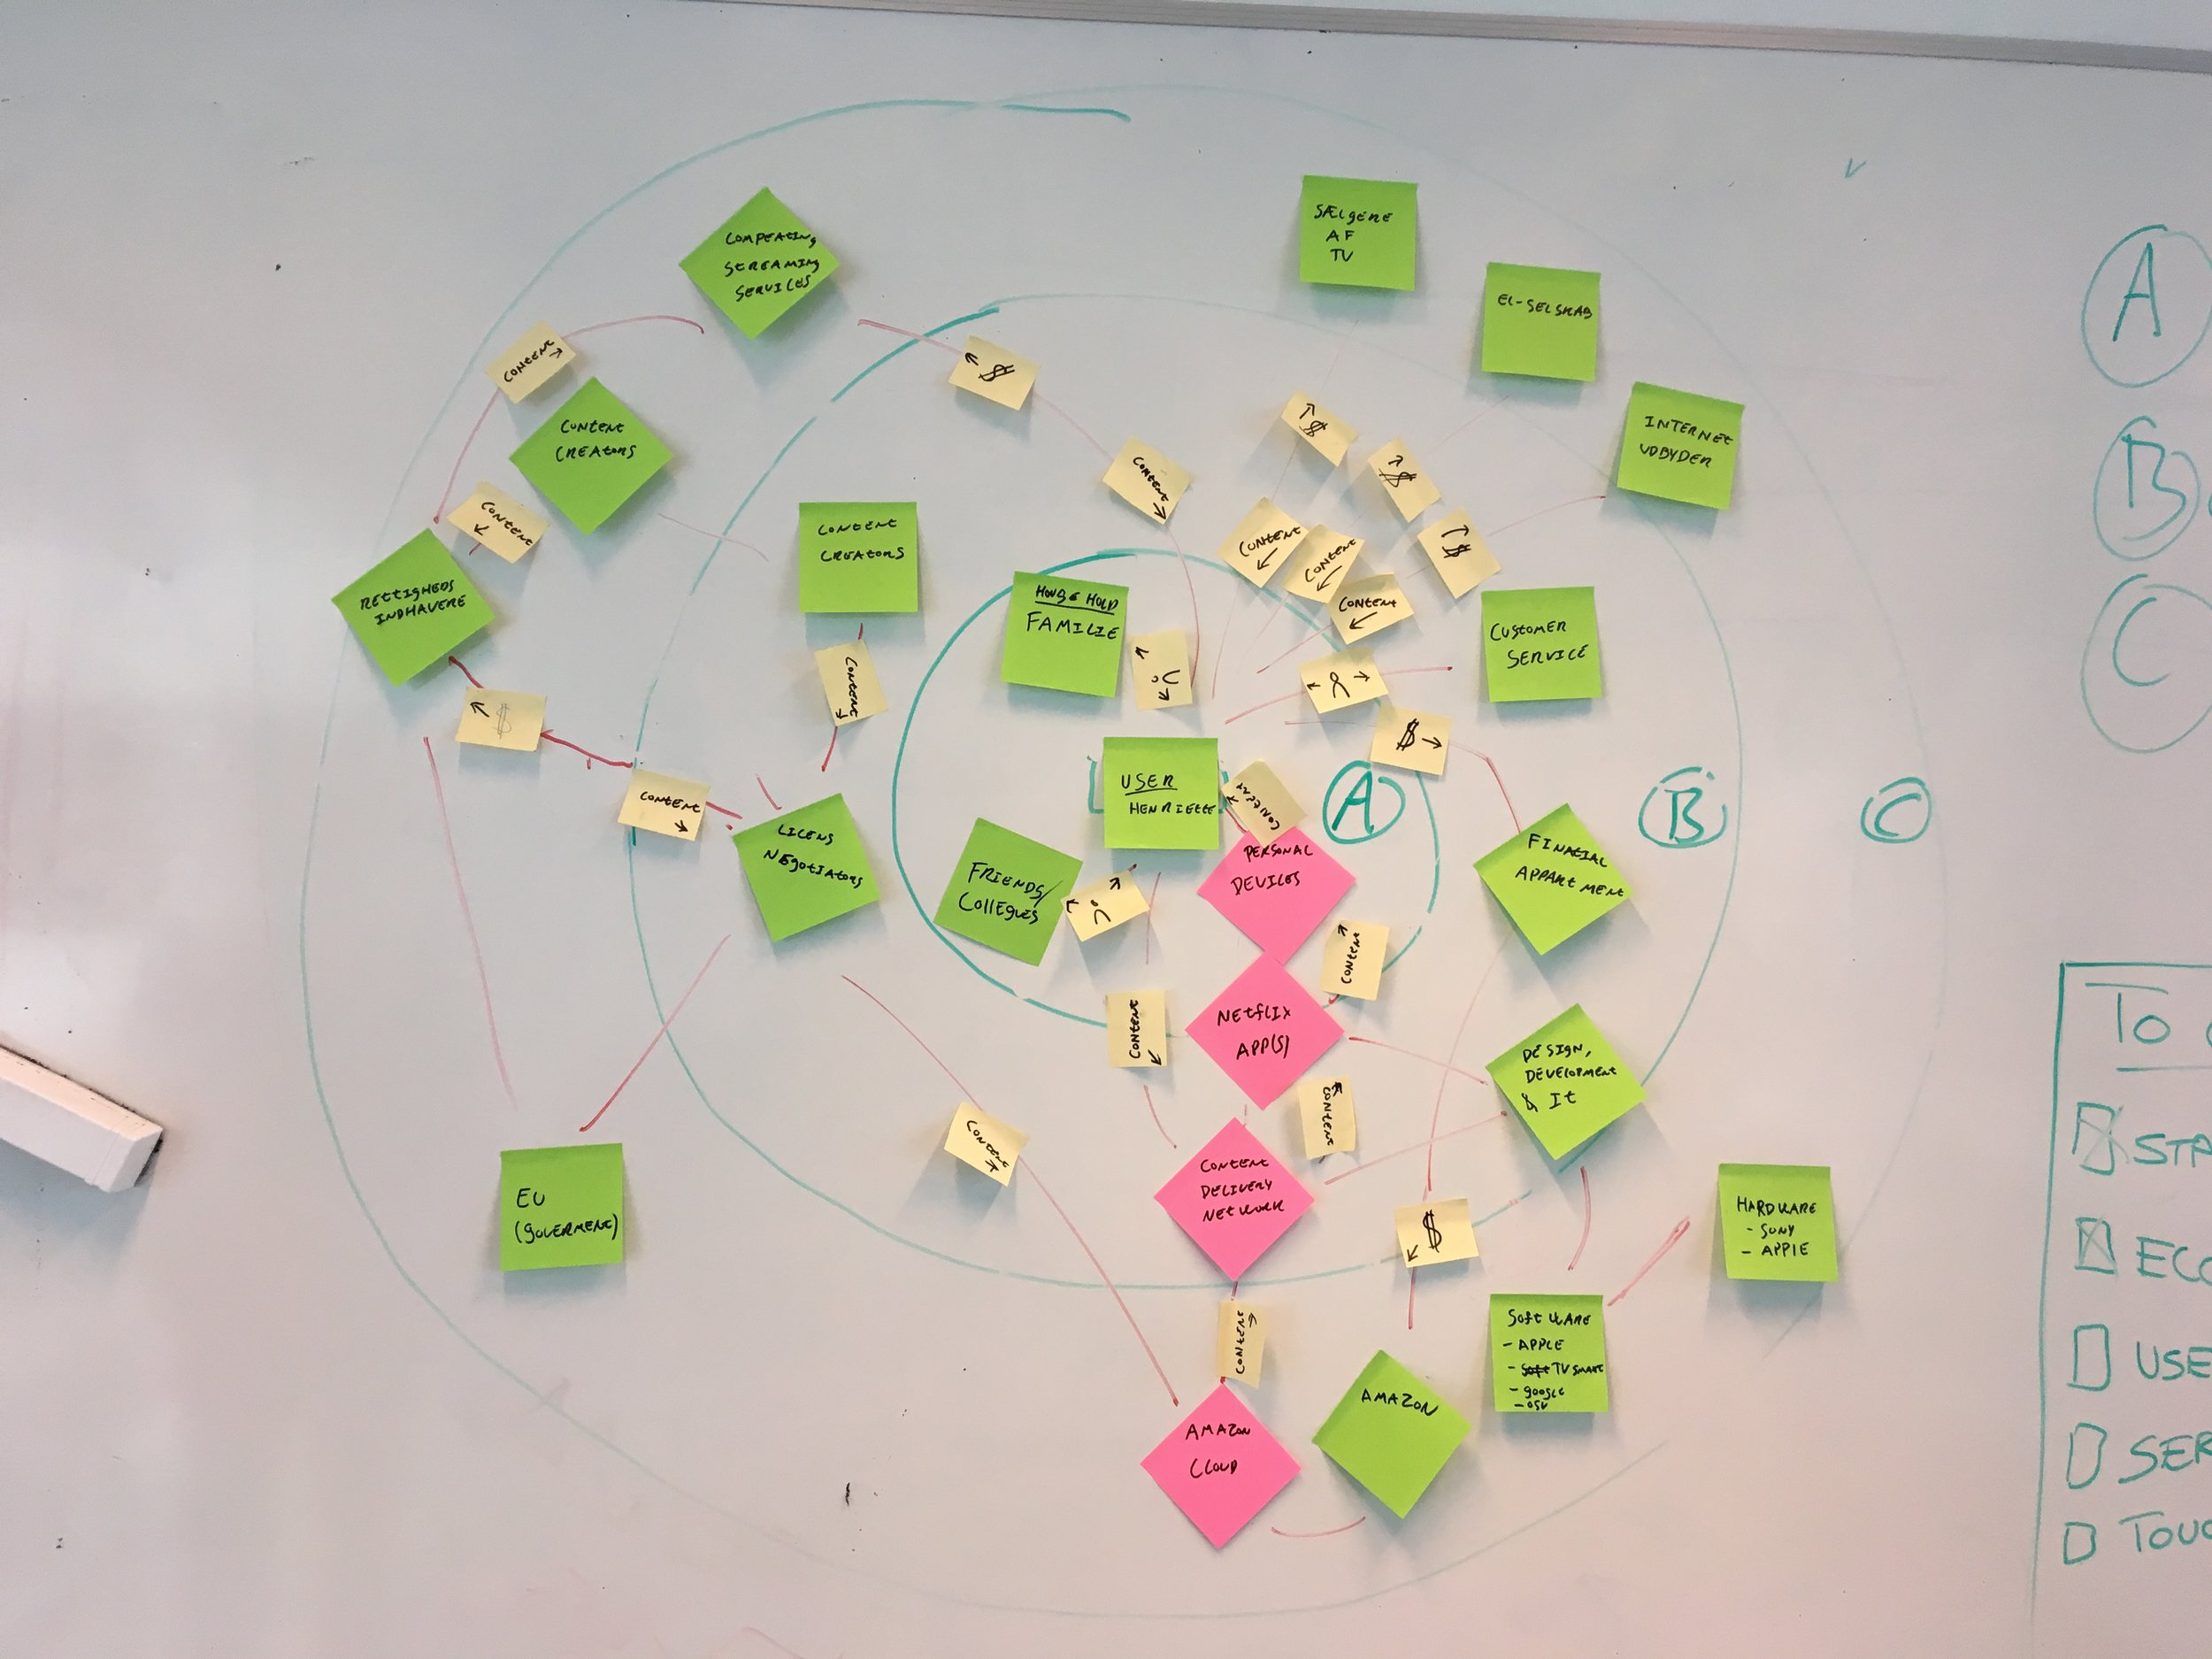 Mapping the service ecosystem using insights from interviews and desk research.